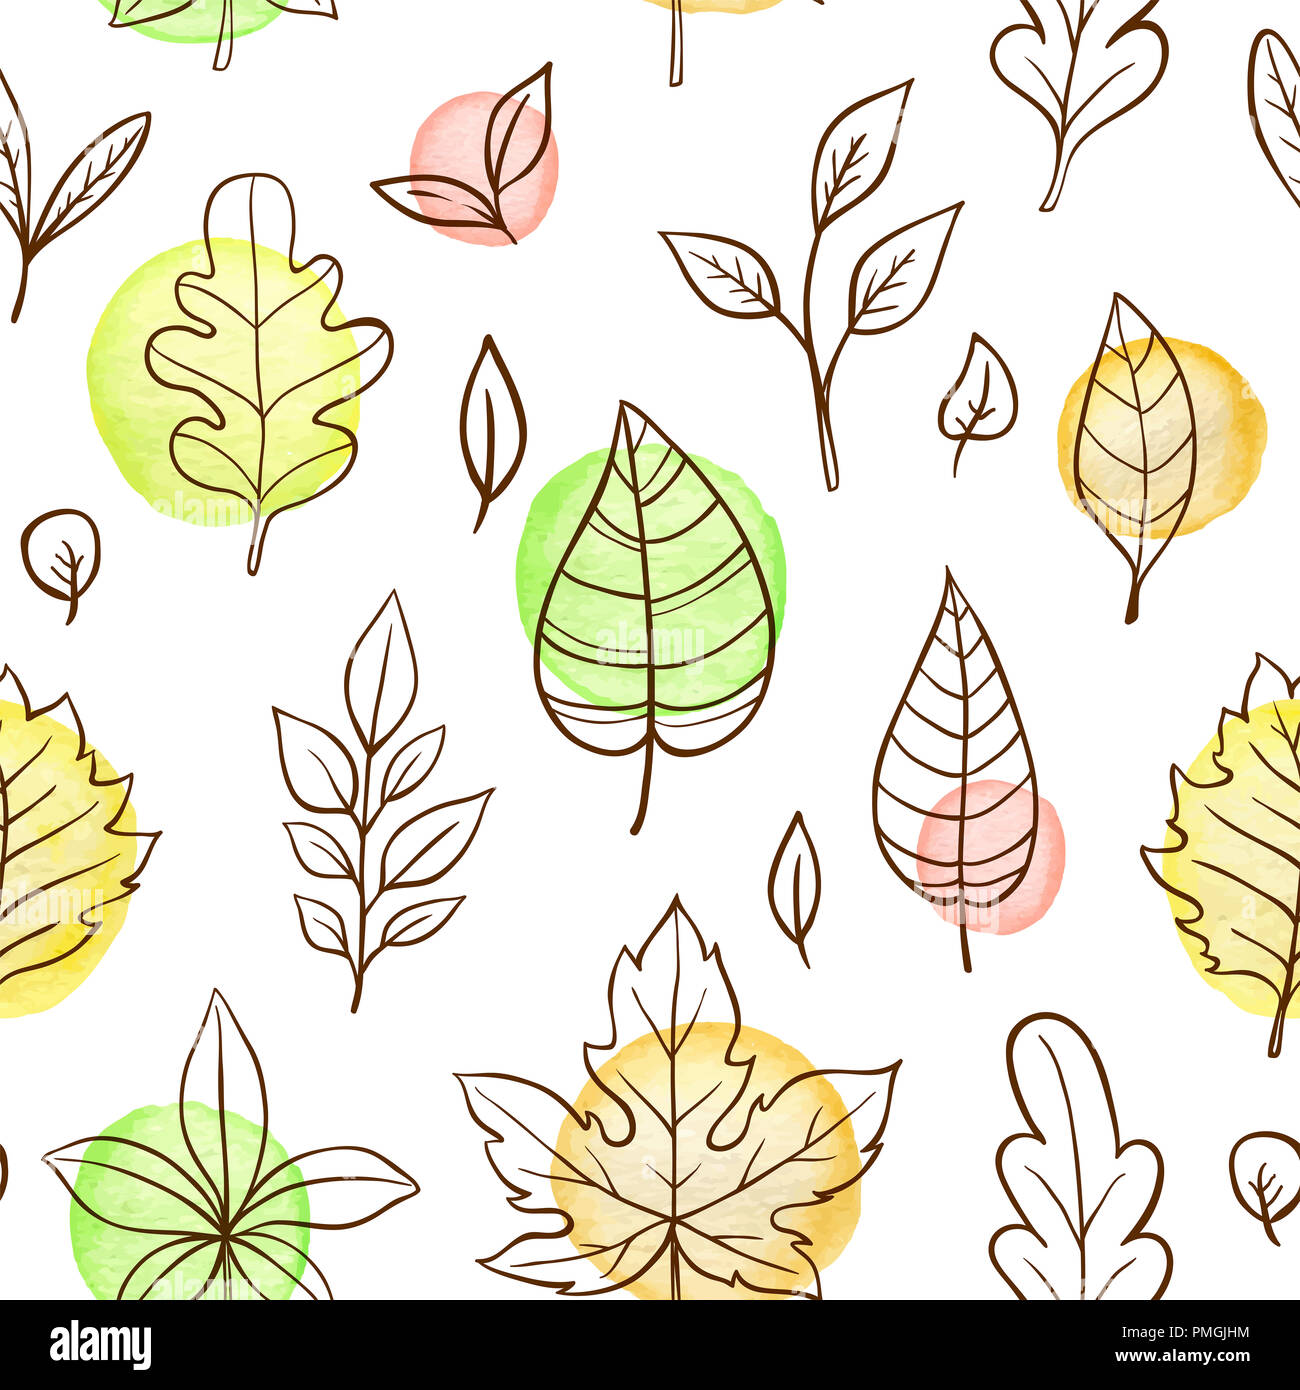 Autumn doodle seamless pattern with falling leaves on a white ...